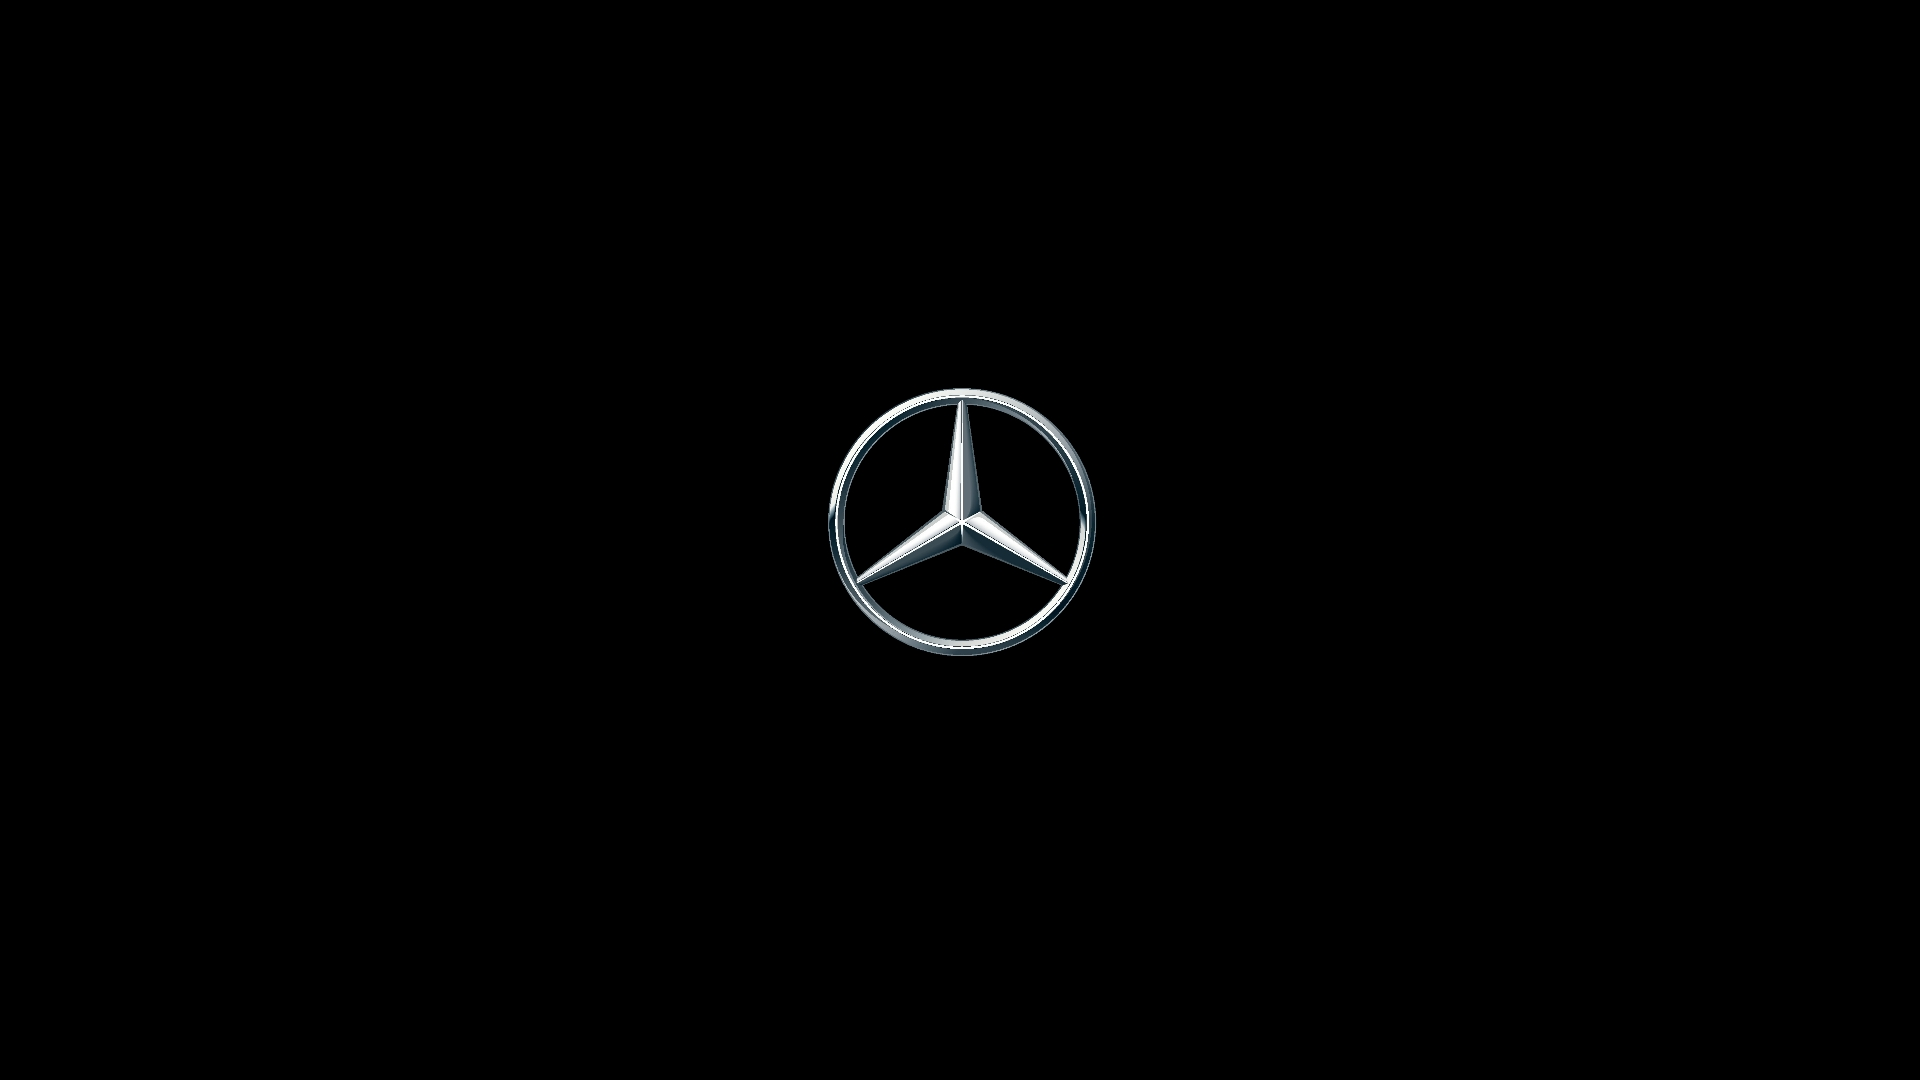 Maybach Symbol >> Mercedes Benz Logo Wallpapers, Pictures, Images